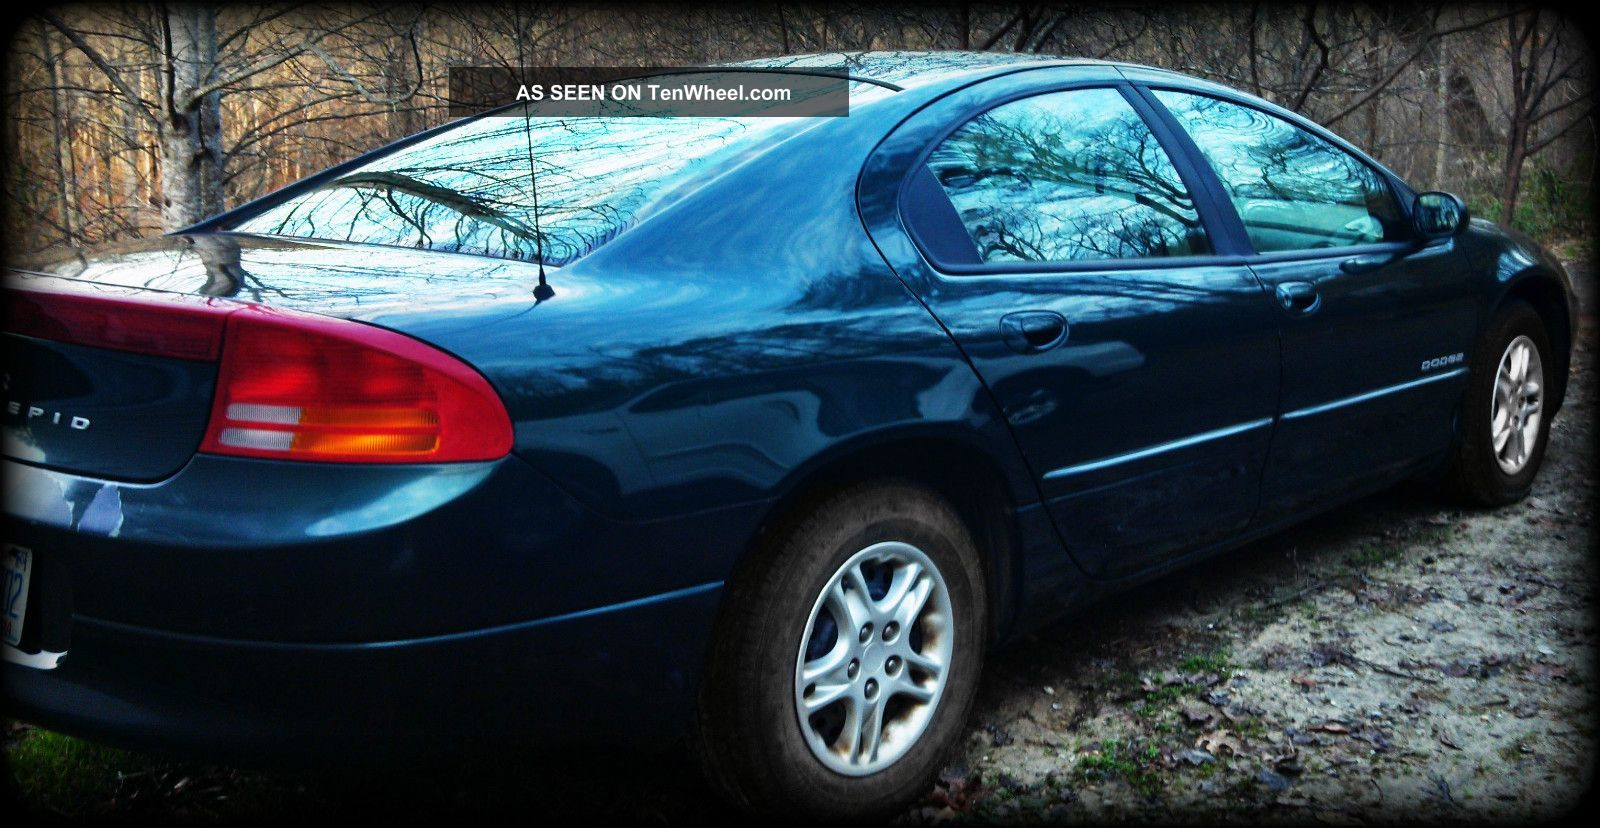 99 dodge intrepid owners manual